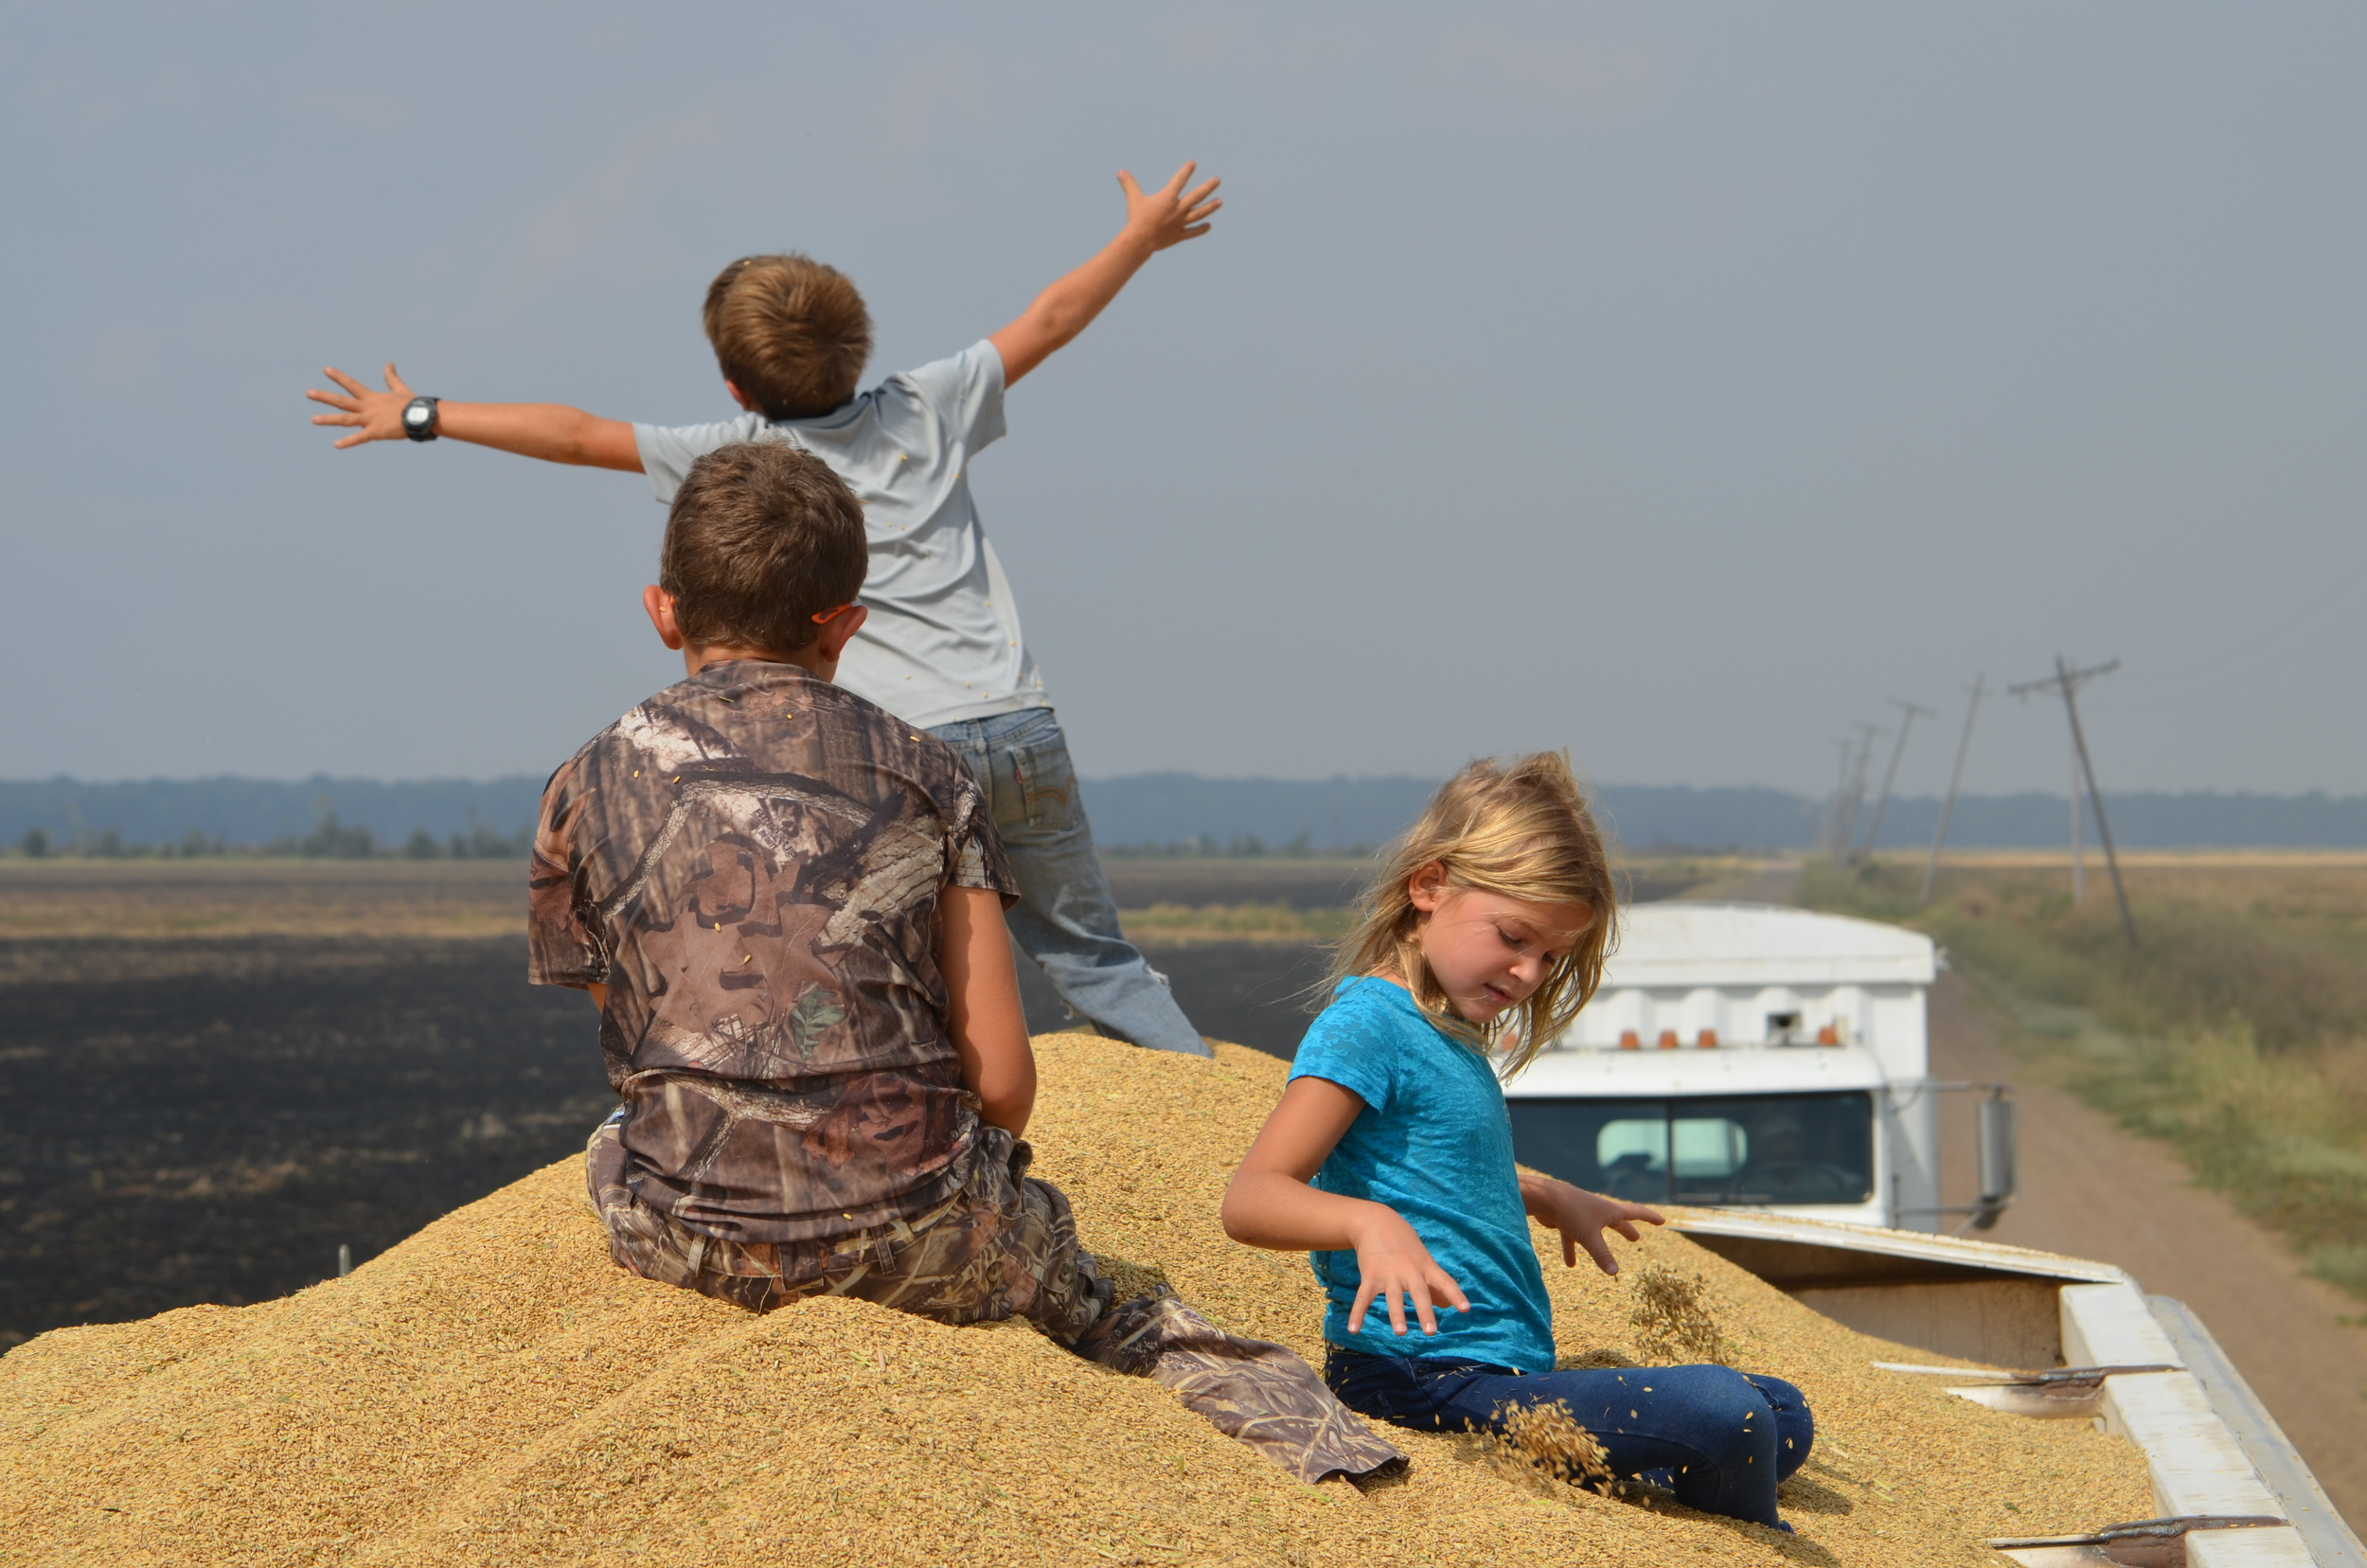 kids playing on a truck full of harvested rice